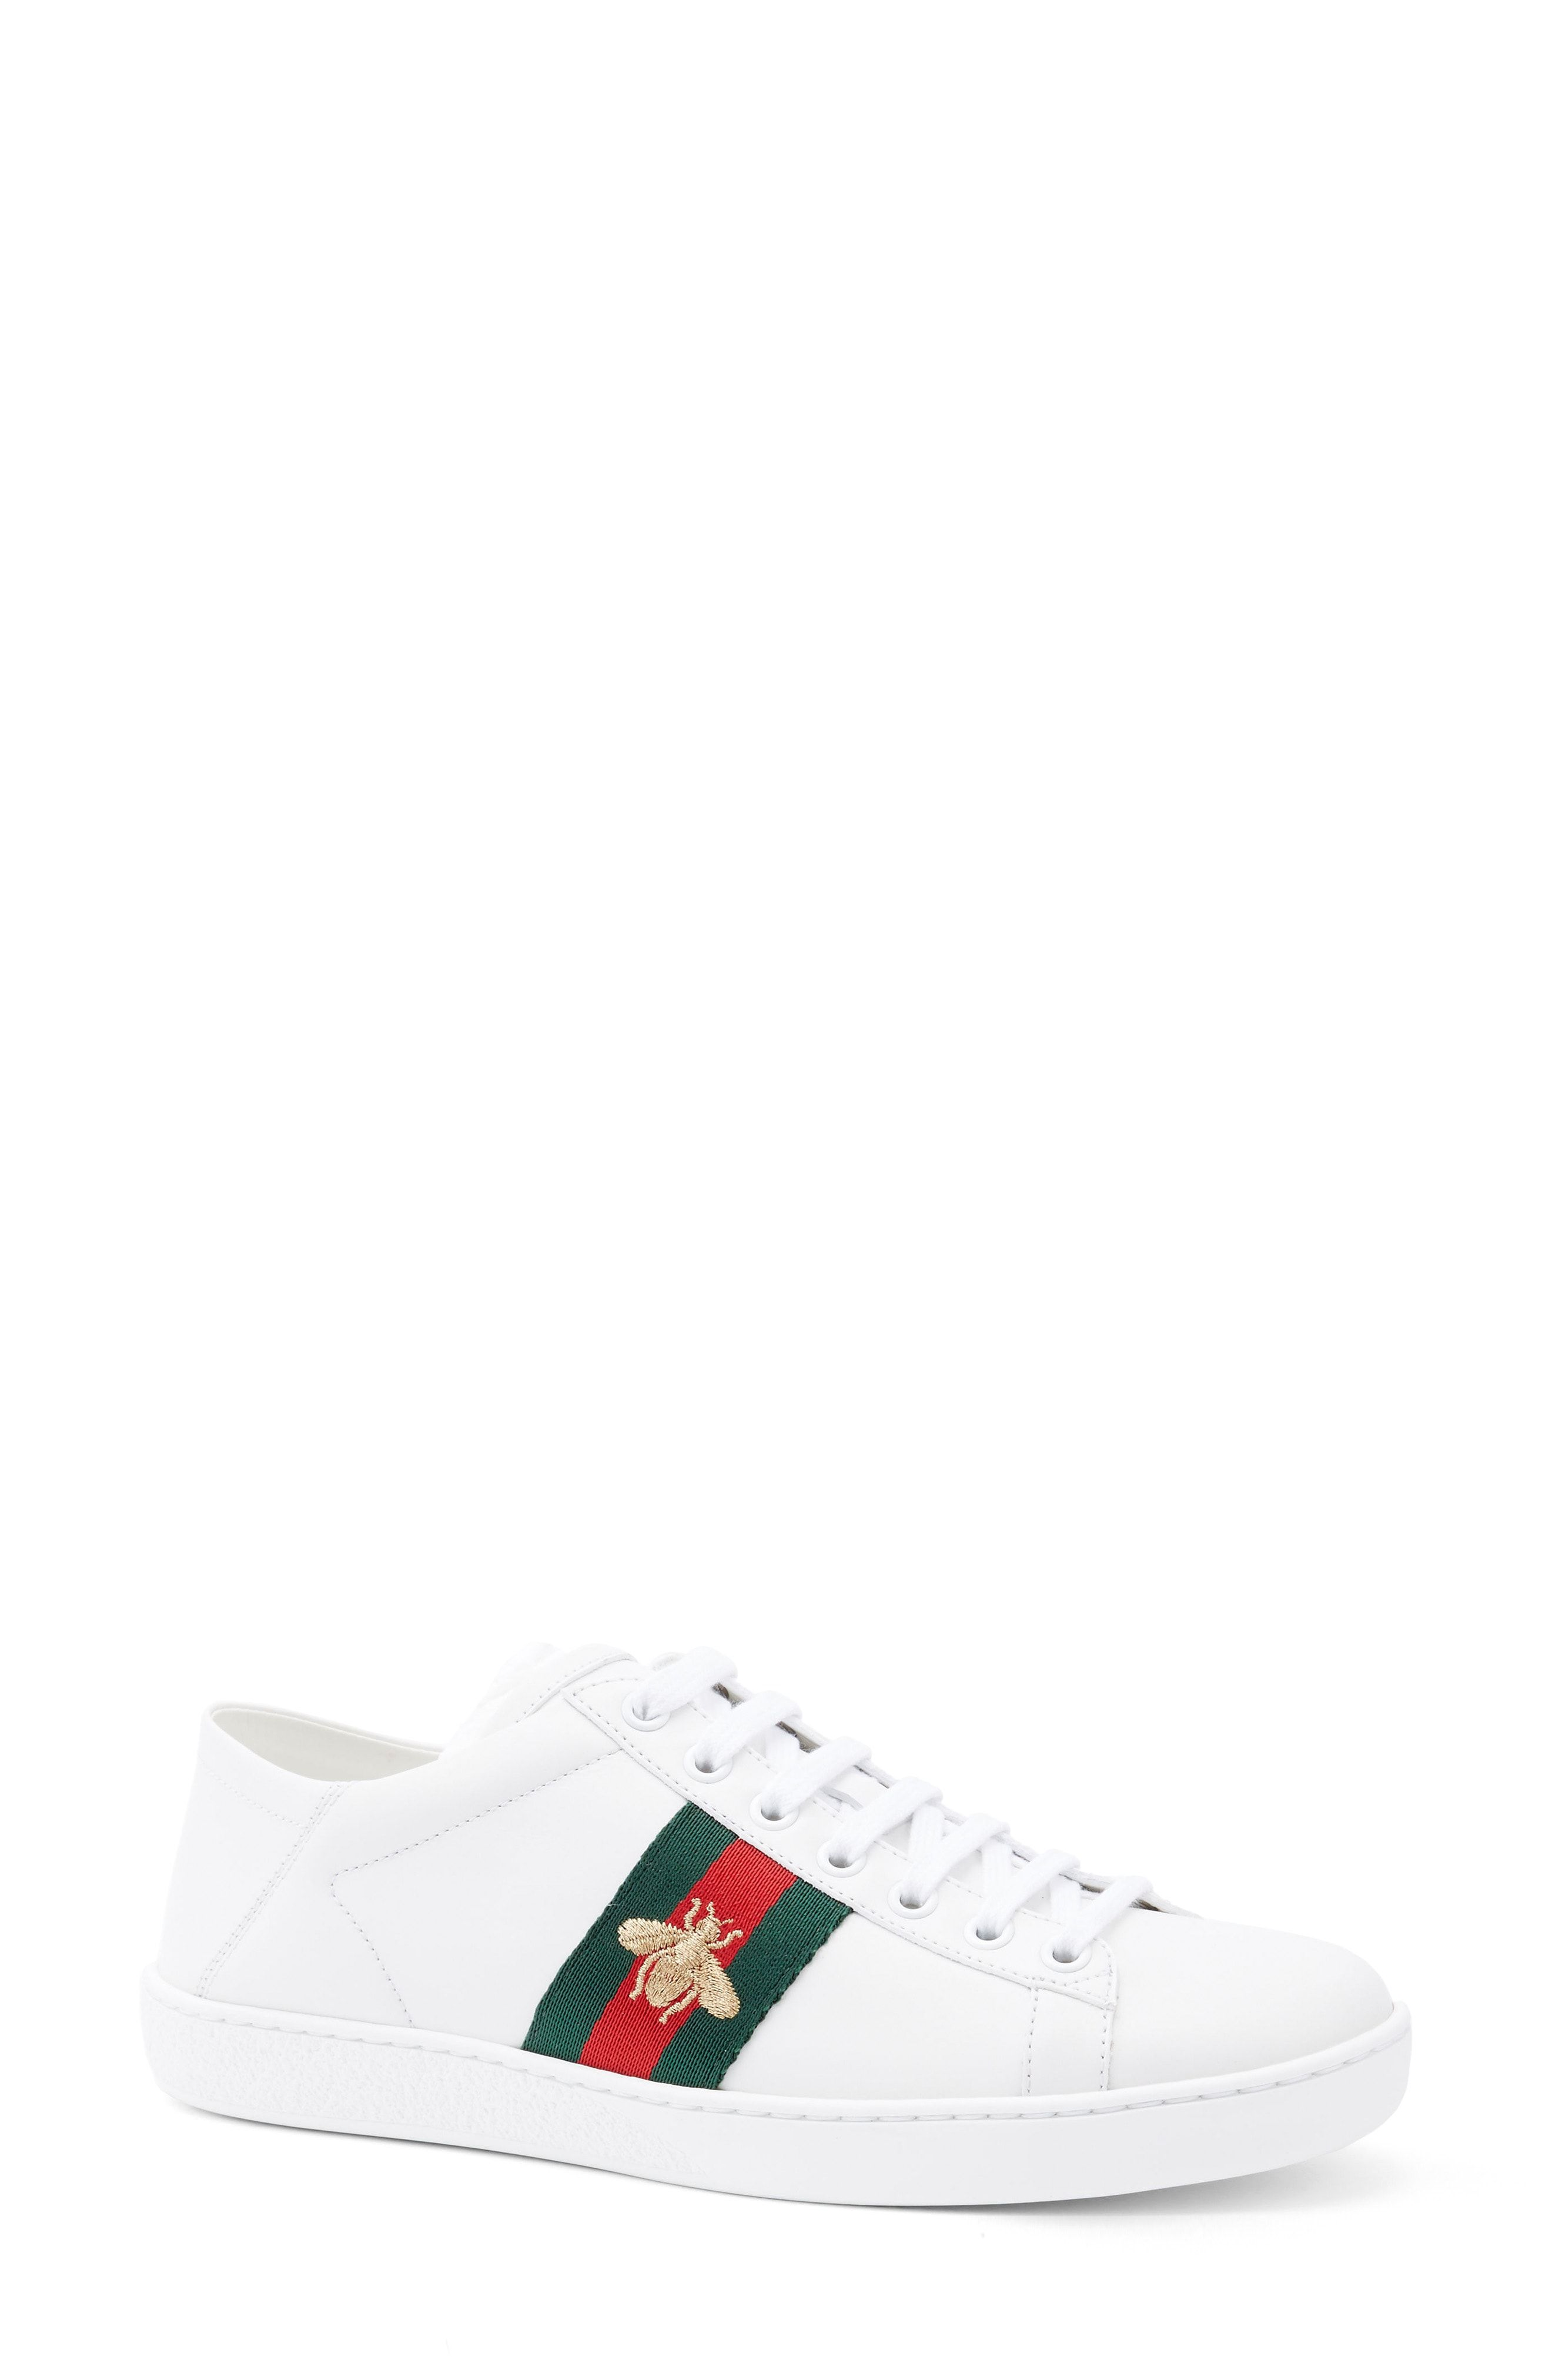 Gucci Ace Embroidered Leather